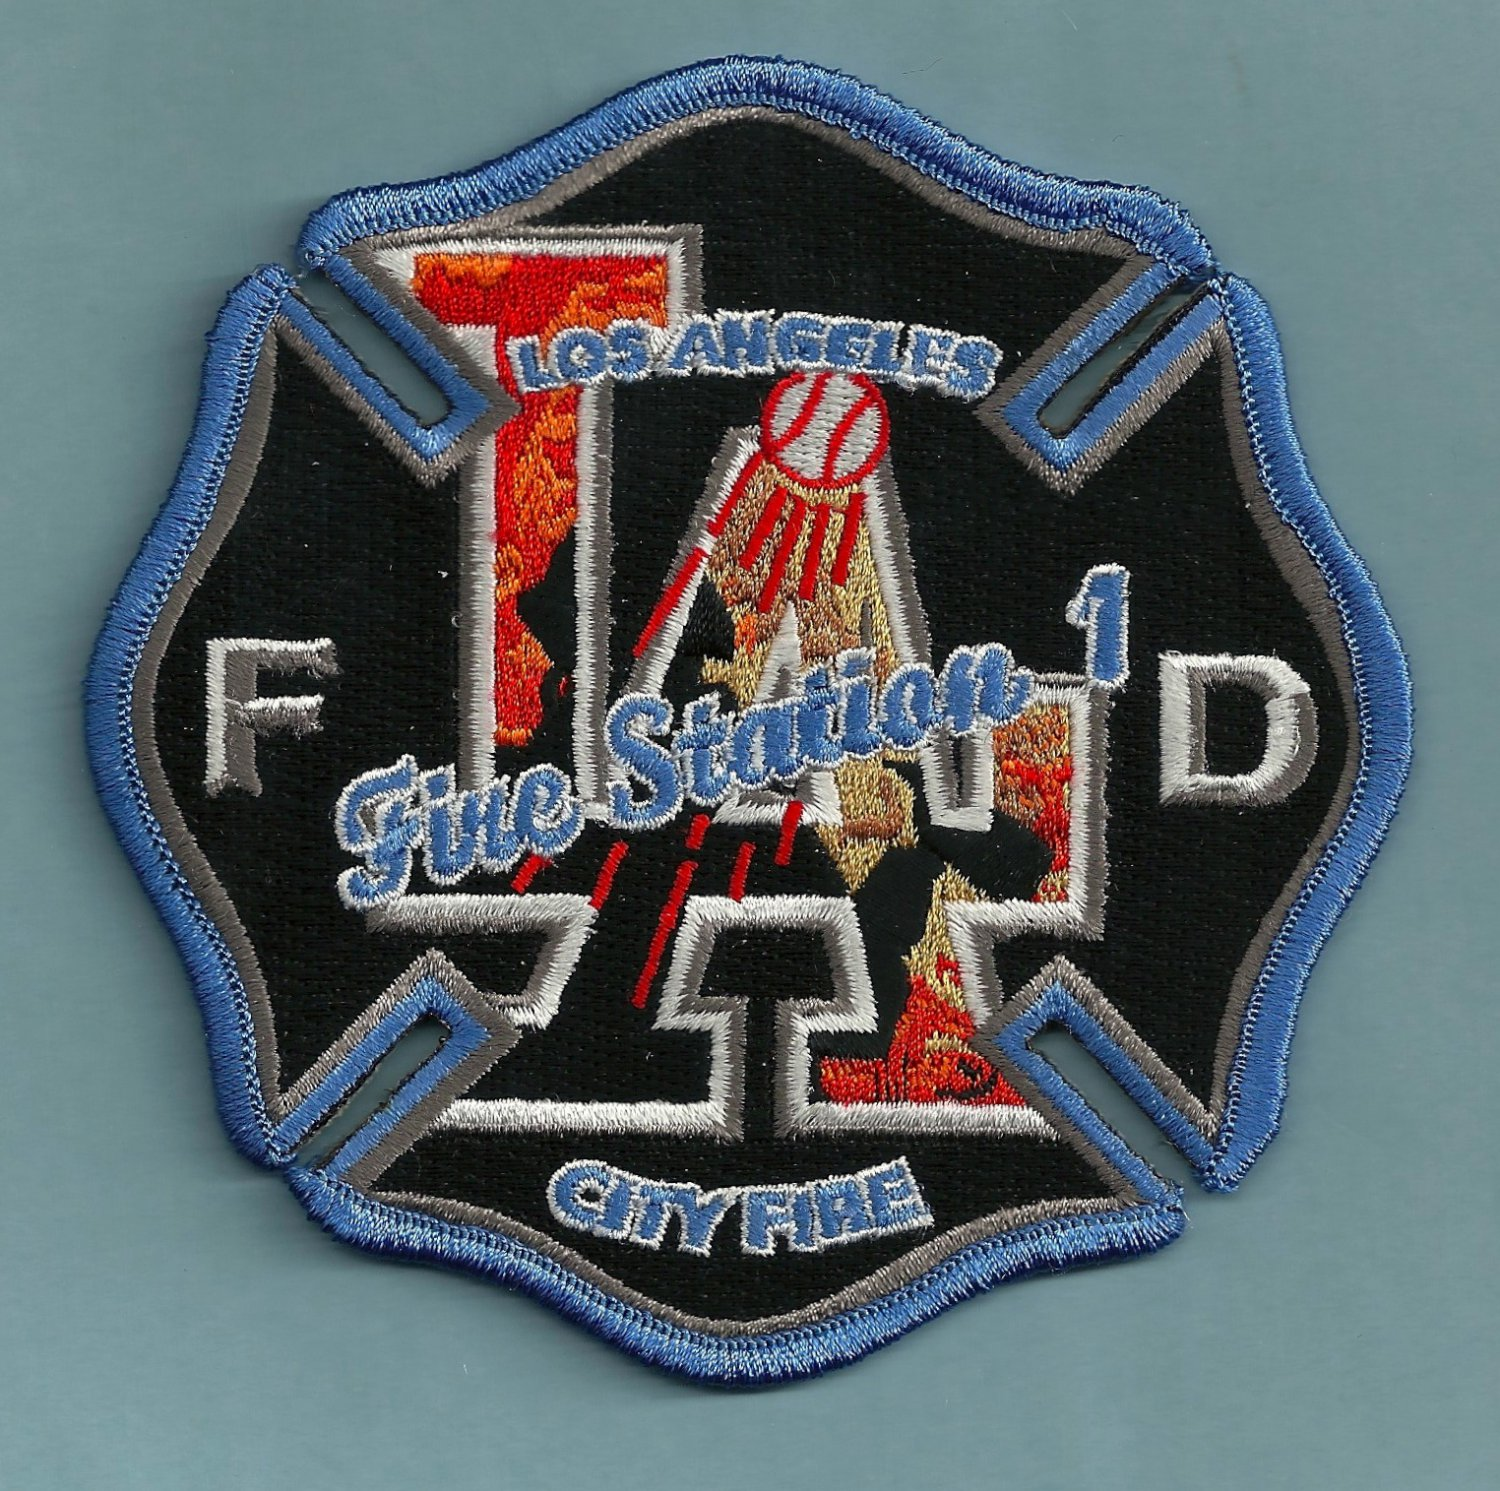 Los Angeles City Fire Department Station 1 Fire Company Patch